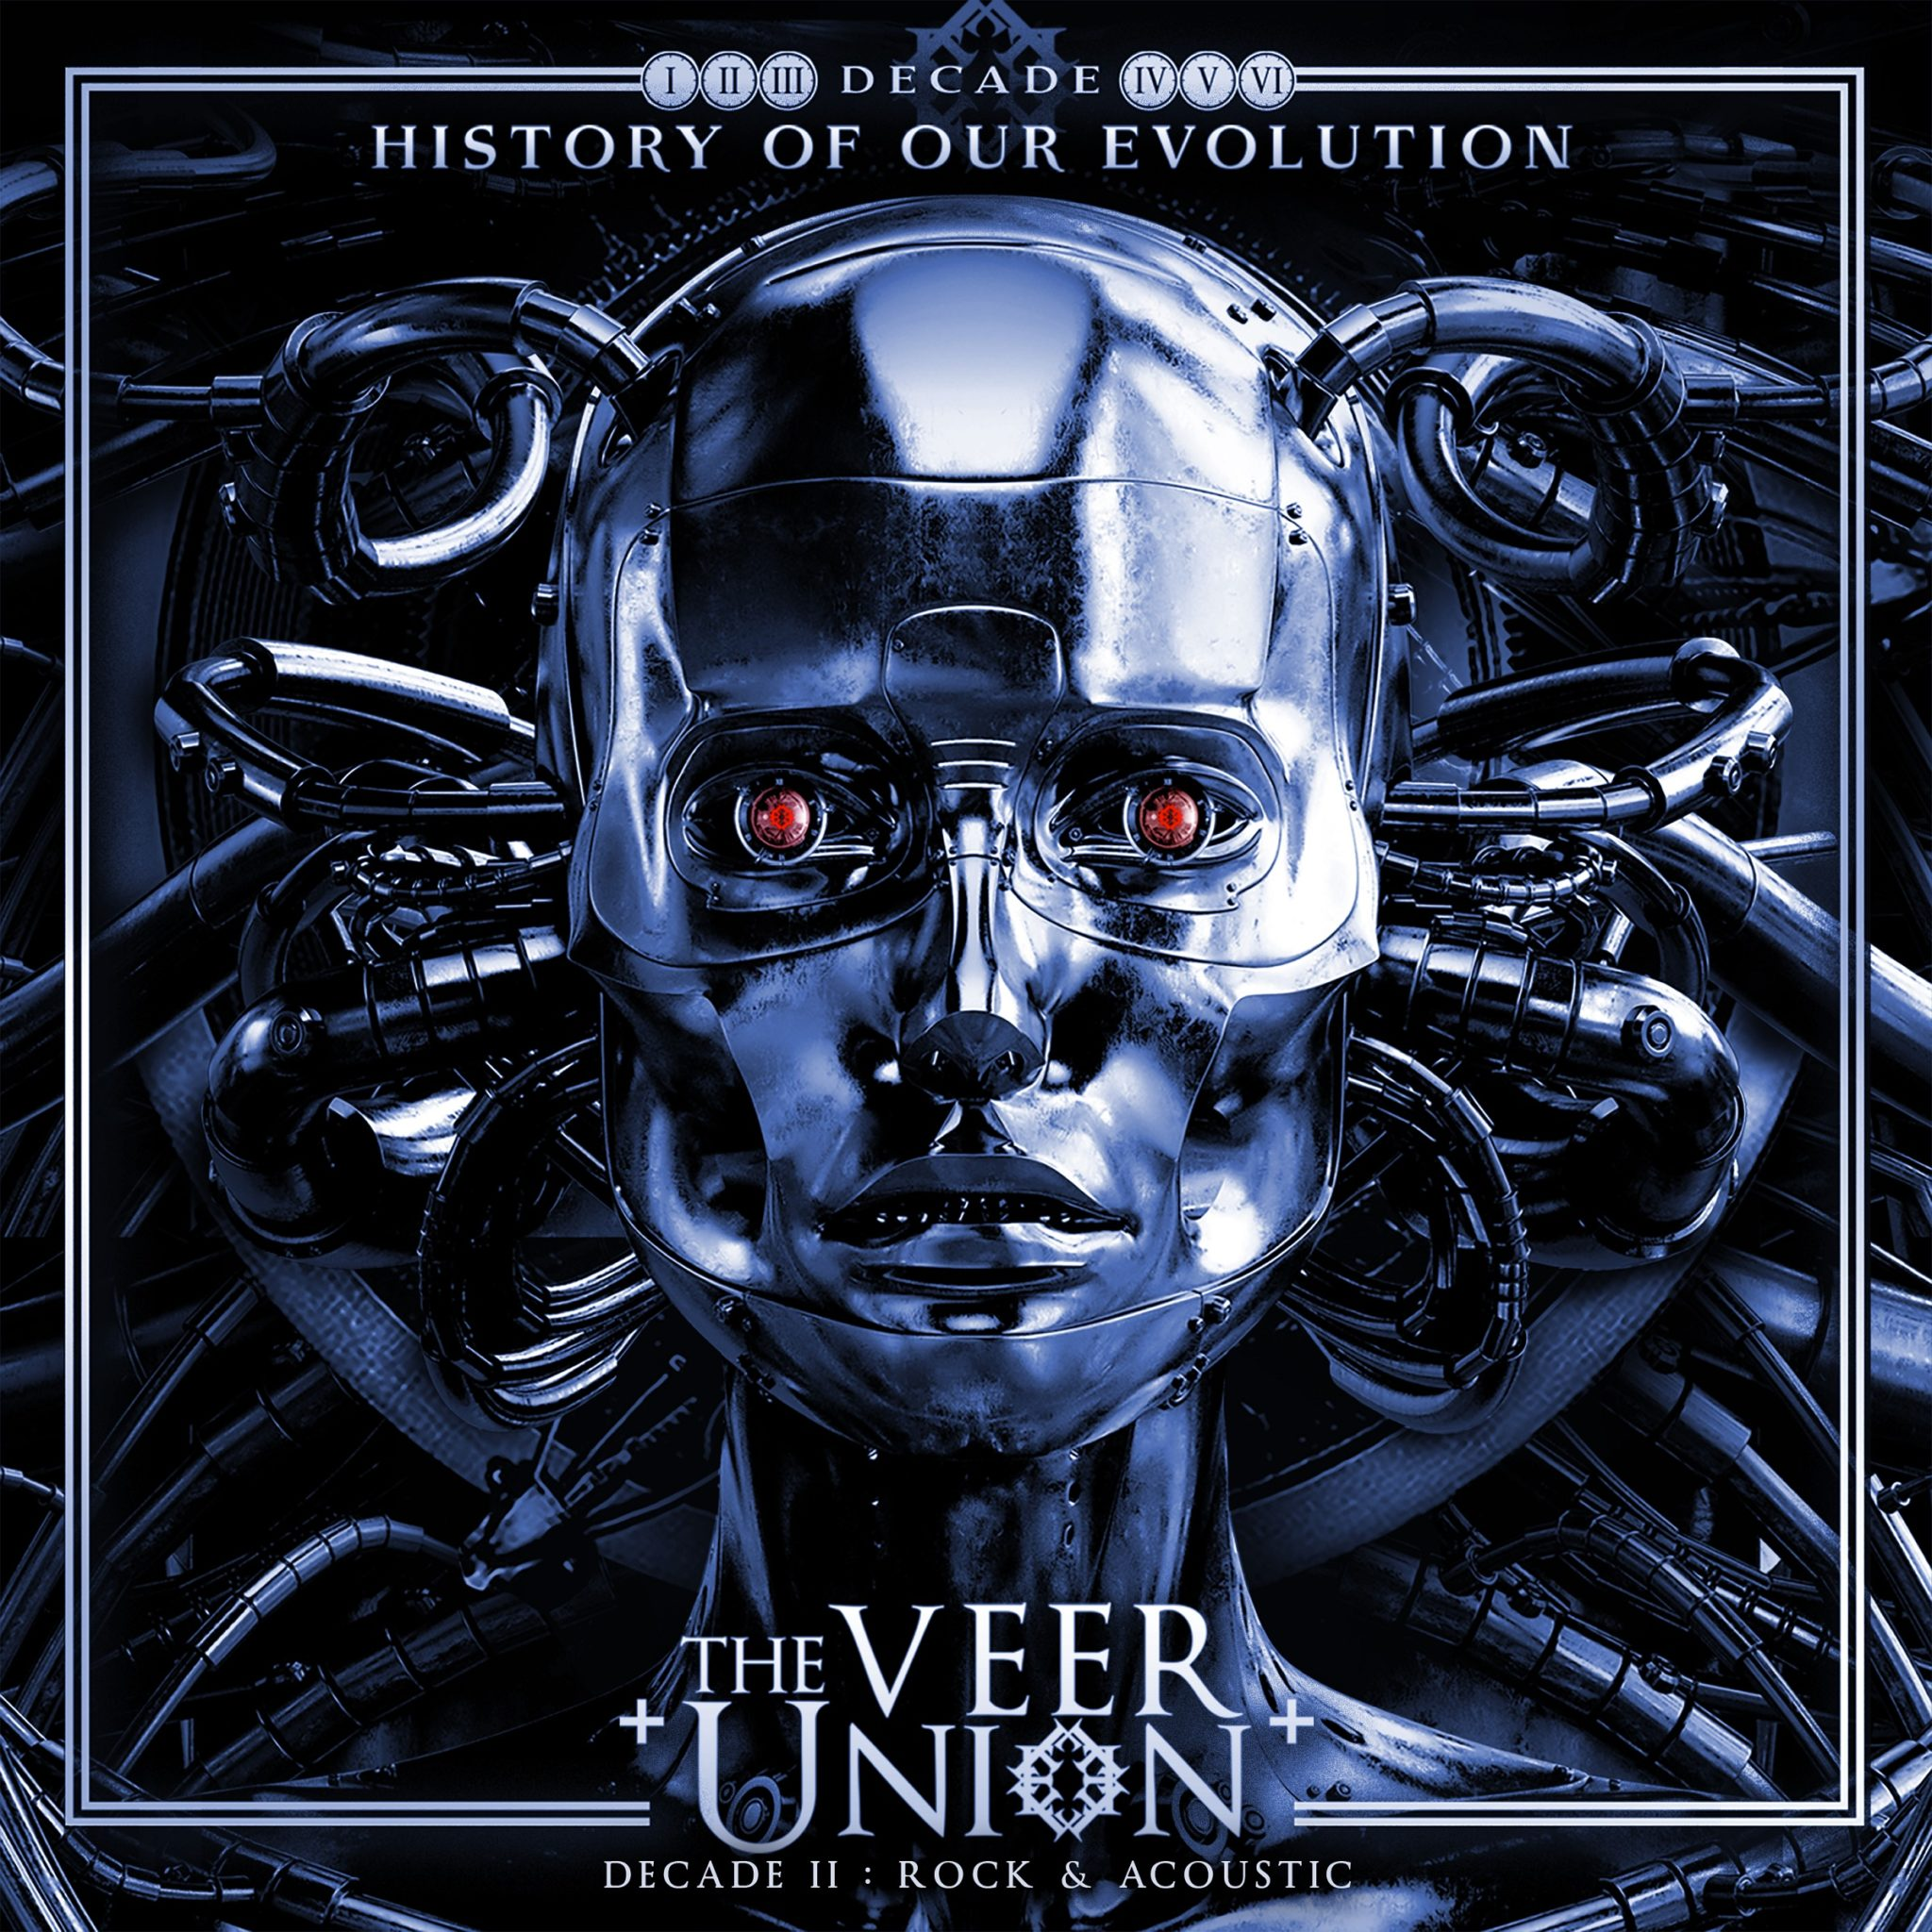 THE VEER UNION release 'Living Not Alive' video, Decade 2